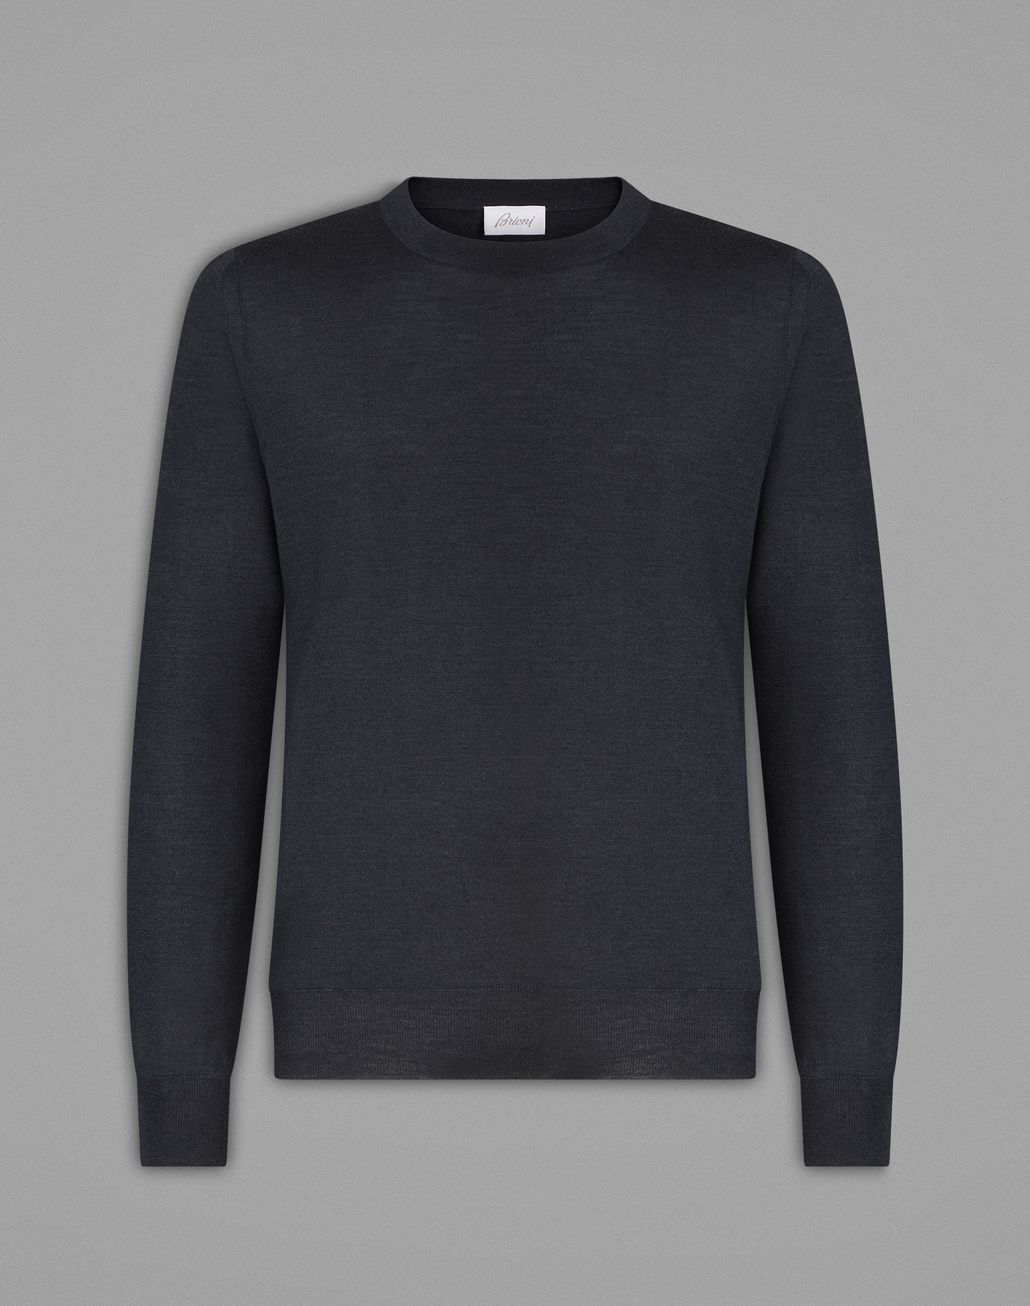 BRIONI 'Essential' Gray Crew-Neck Sweater Knitwear [*** pickupInStoreShippingNotGuaranteed_info ***] f